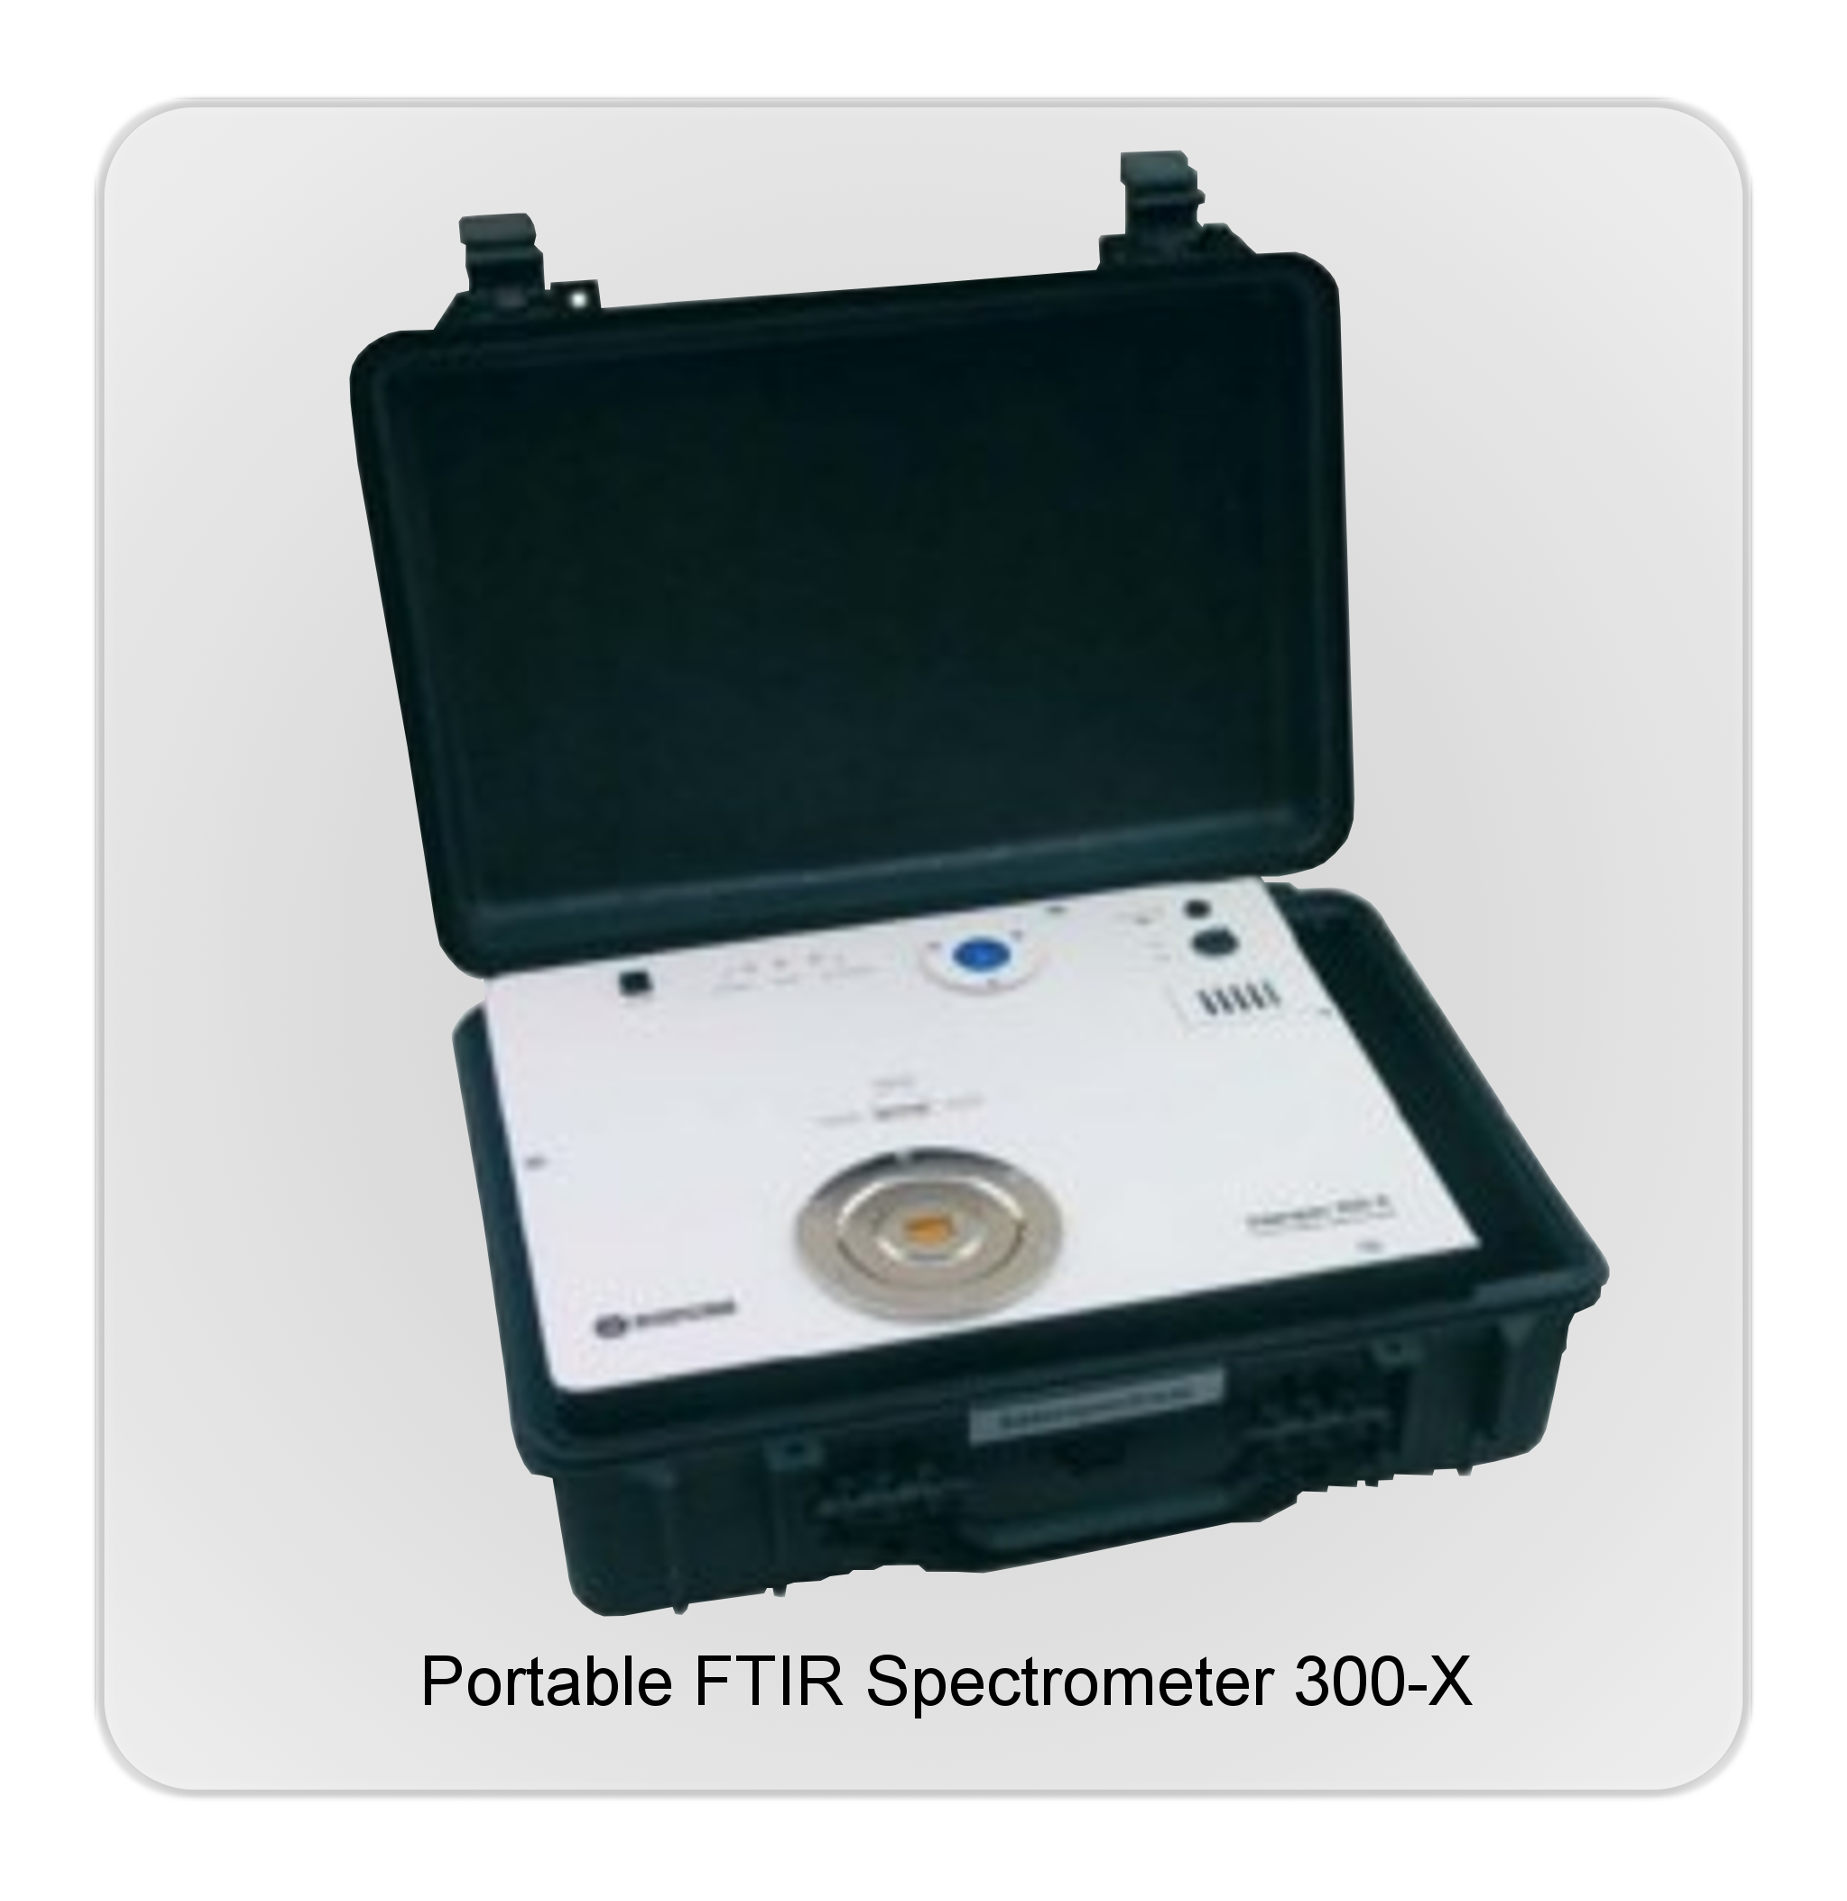 kassay-ram2000-spectrometers-products-lab-spectrometers-portable-spectrometer-300-x